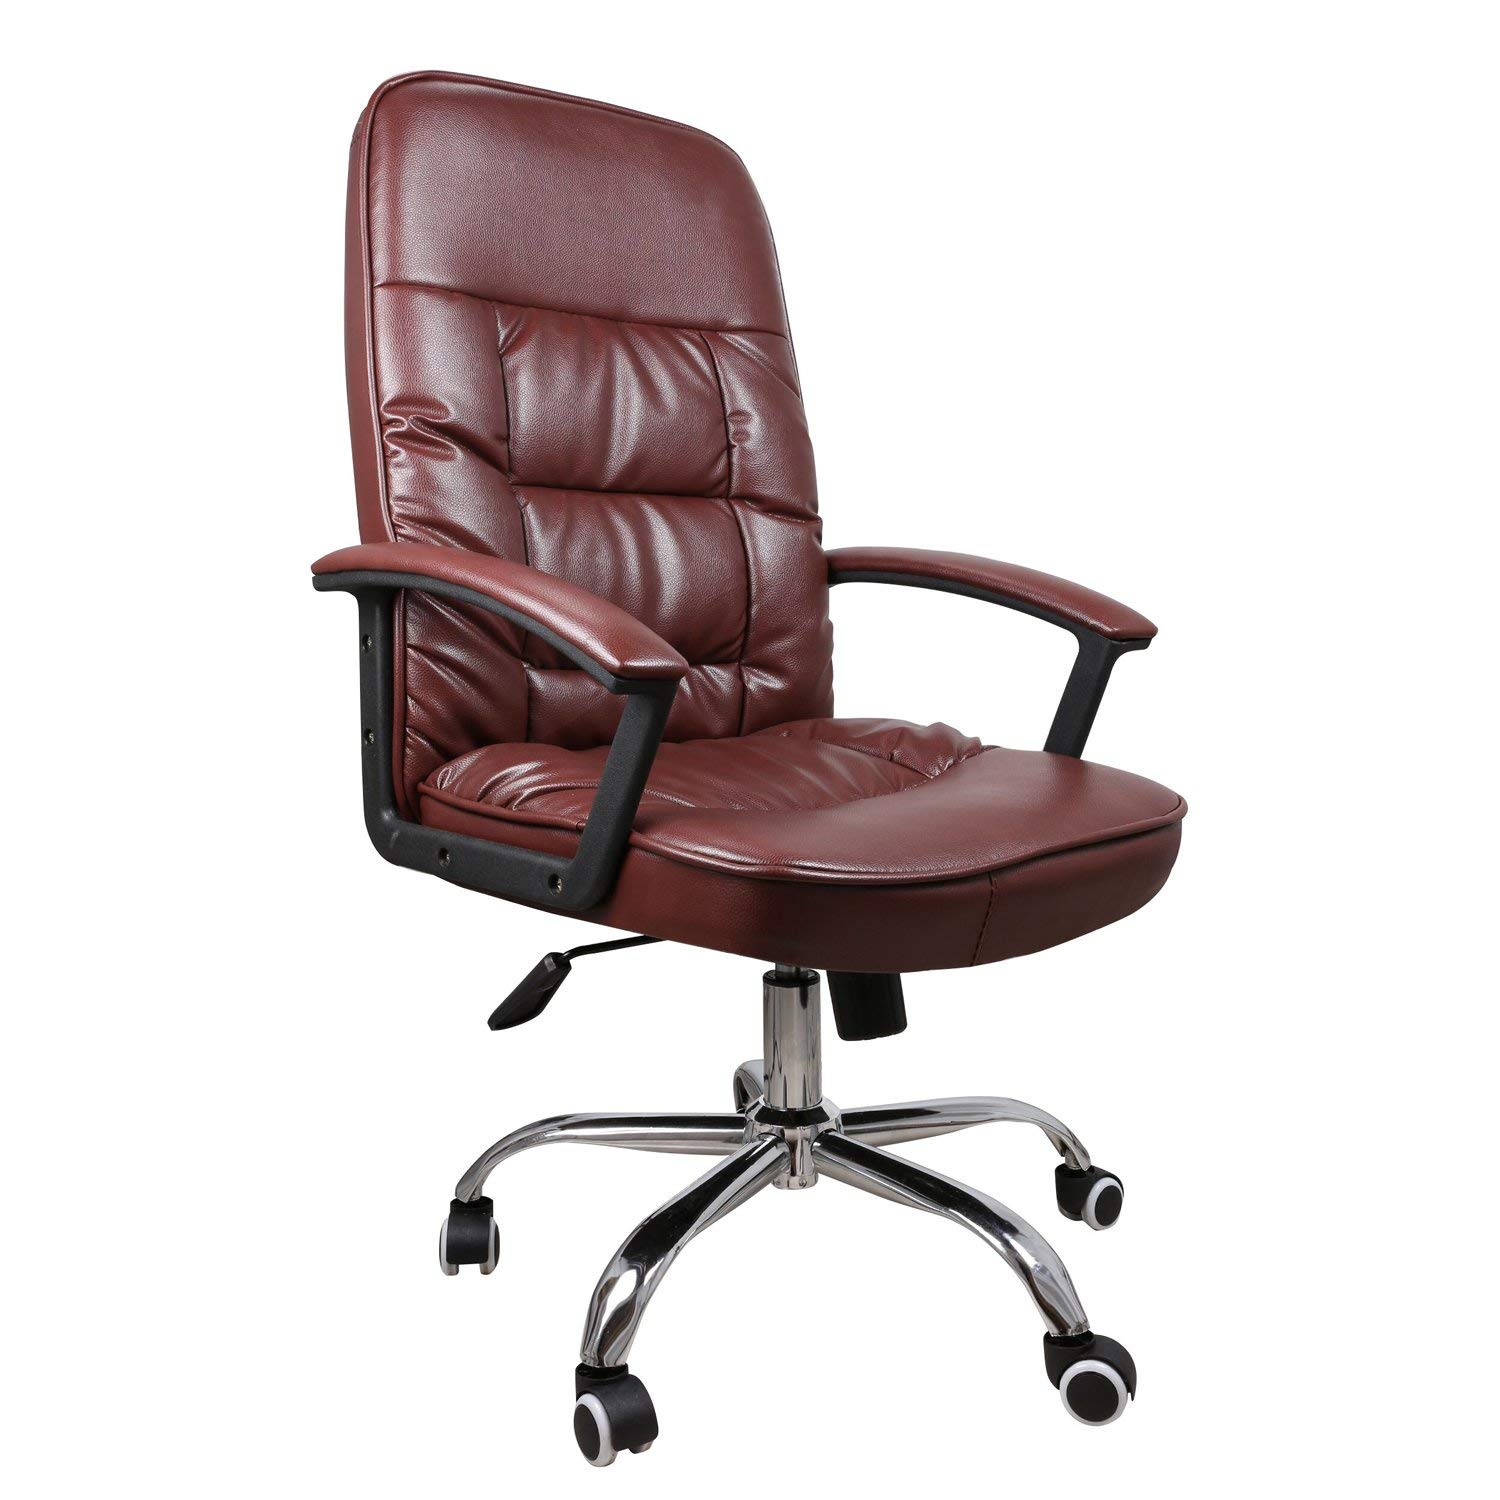 Ergonomic Big & Tall Office Chair with High Back Large Seat and Tilt Function Executive Swivel Computer Chair PU Brown